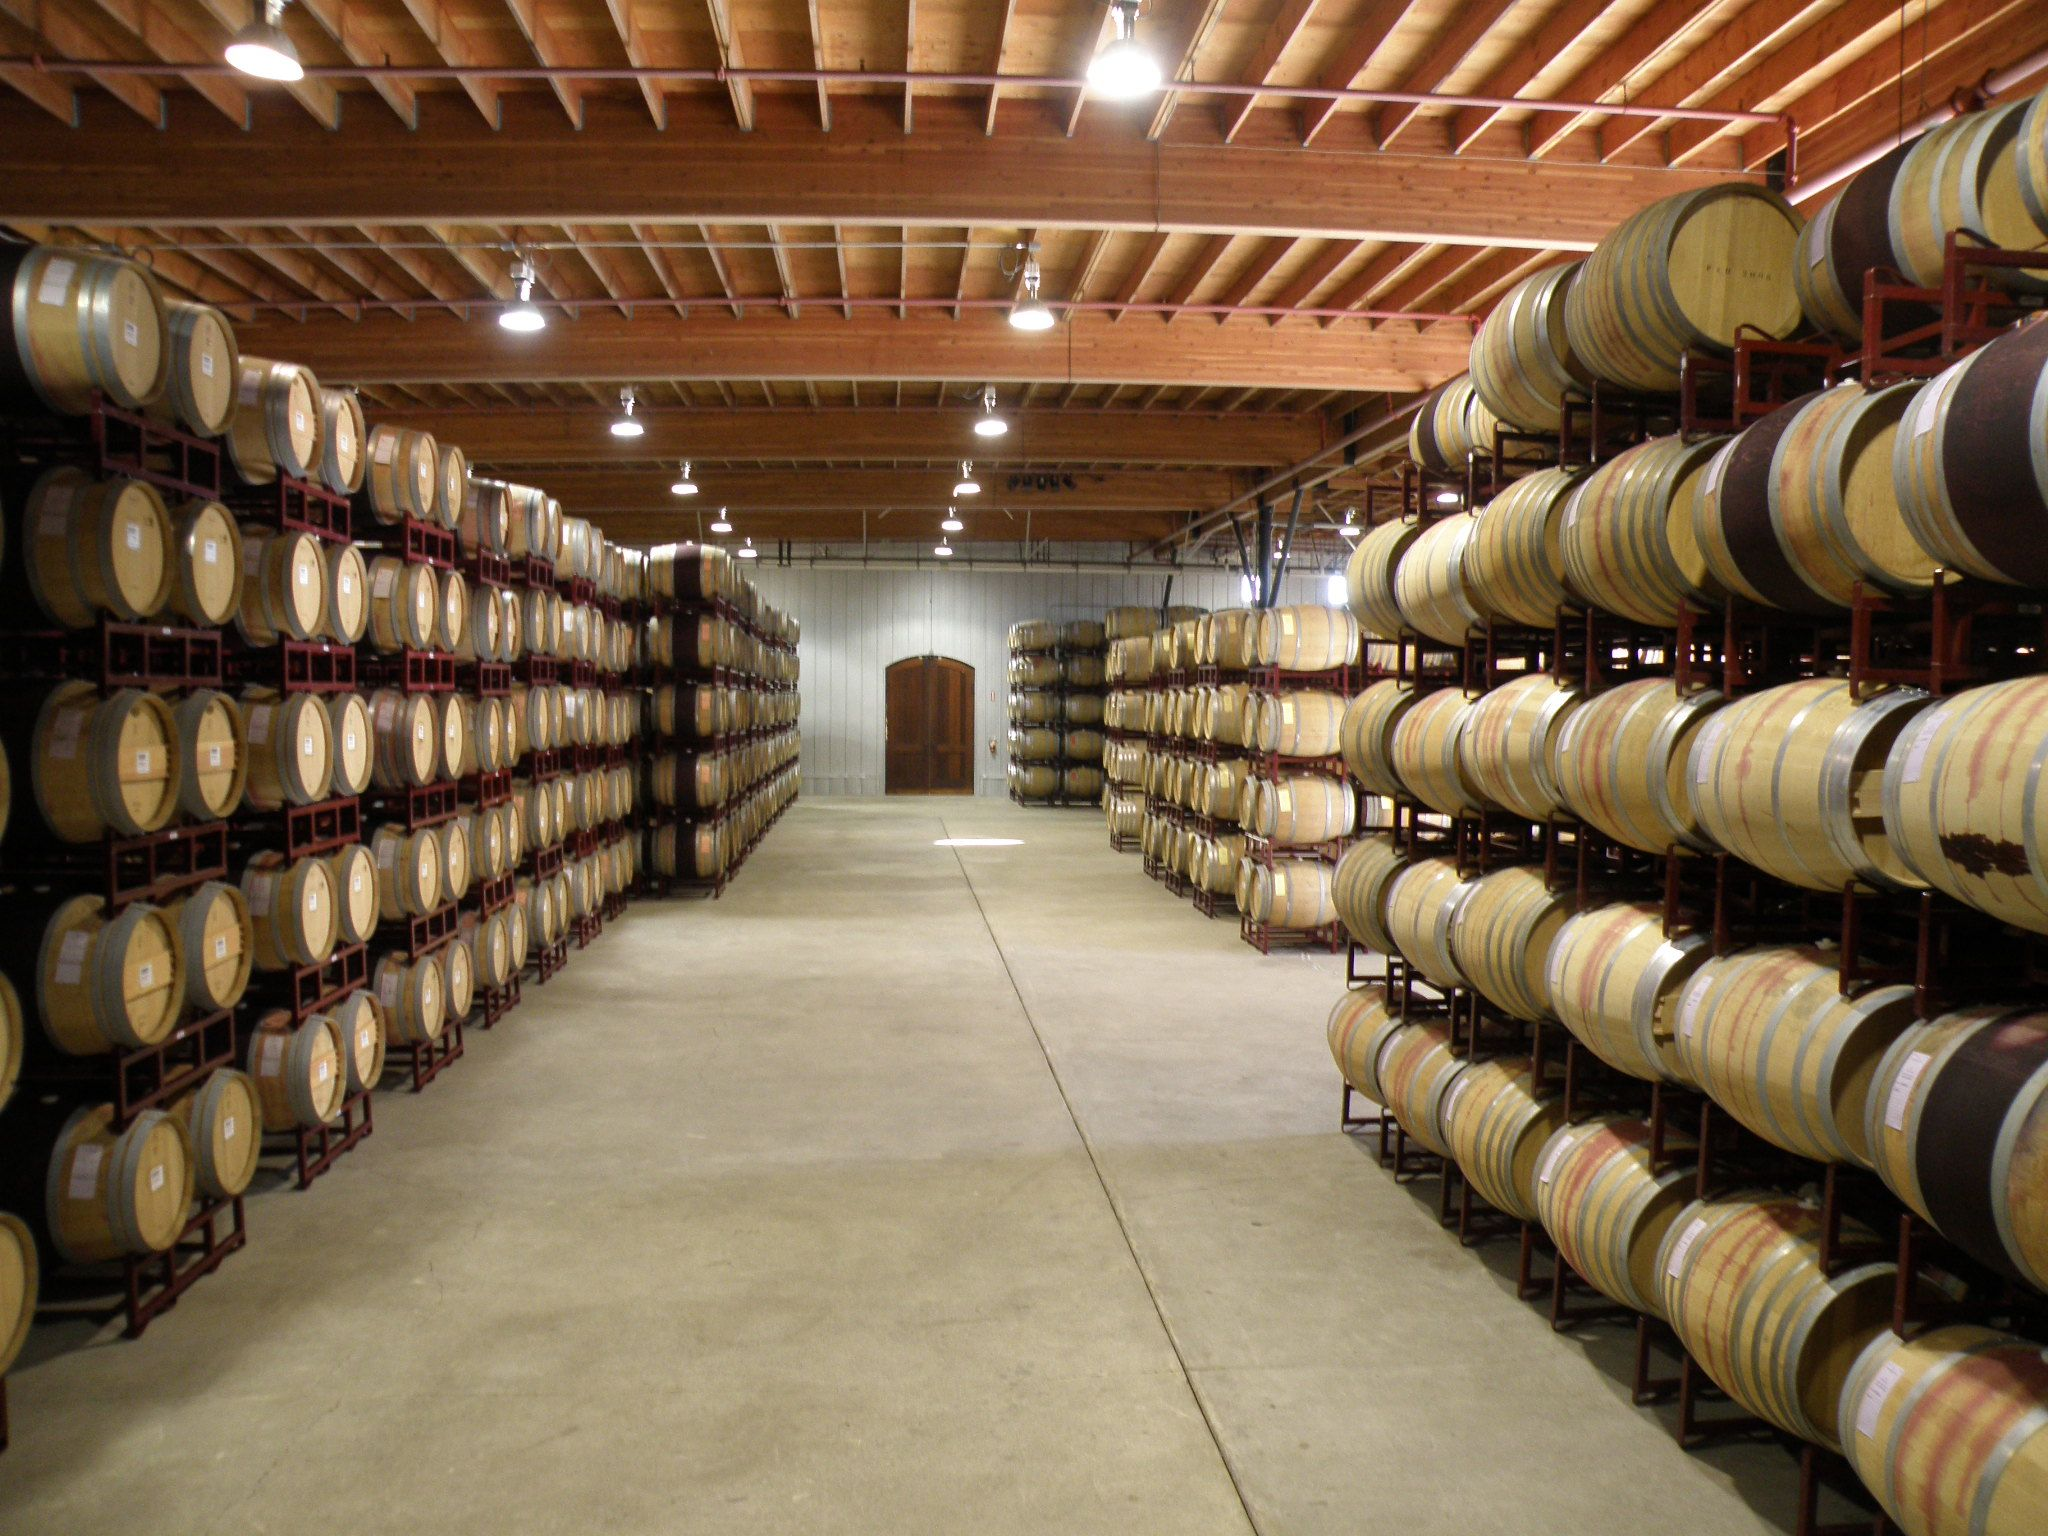 Our cellar room. This is where we ferment and age our wine.